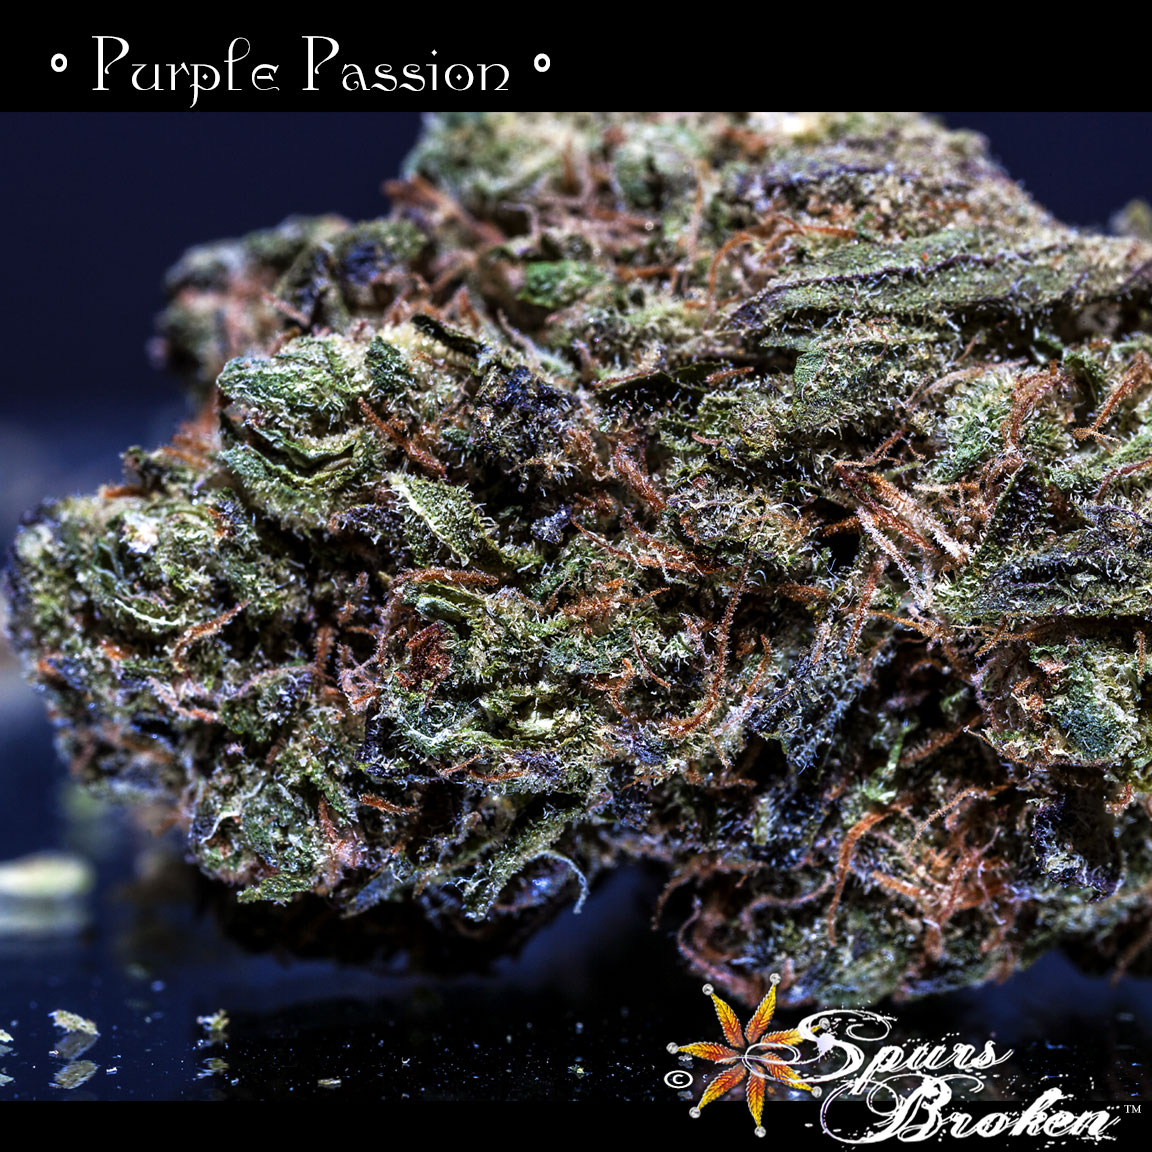 Purple Passion - Cannabis Macro Photography by Spurs Broken (Robert R. Sanders)